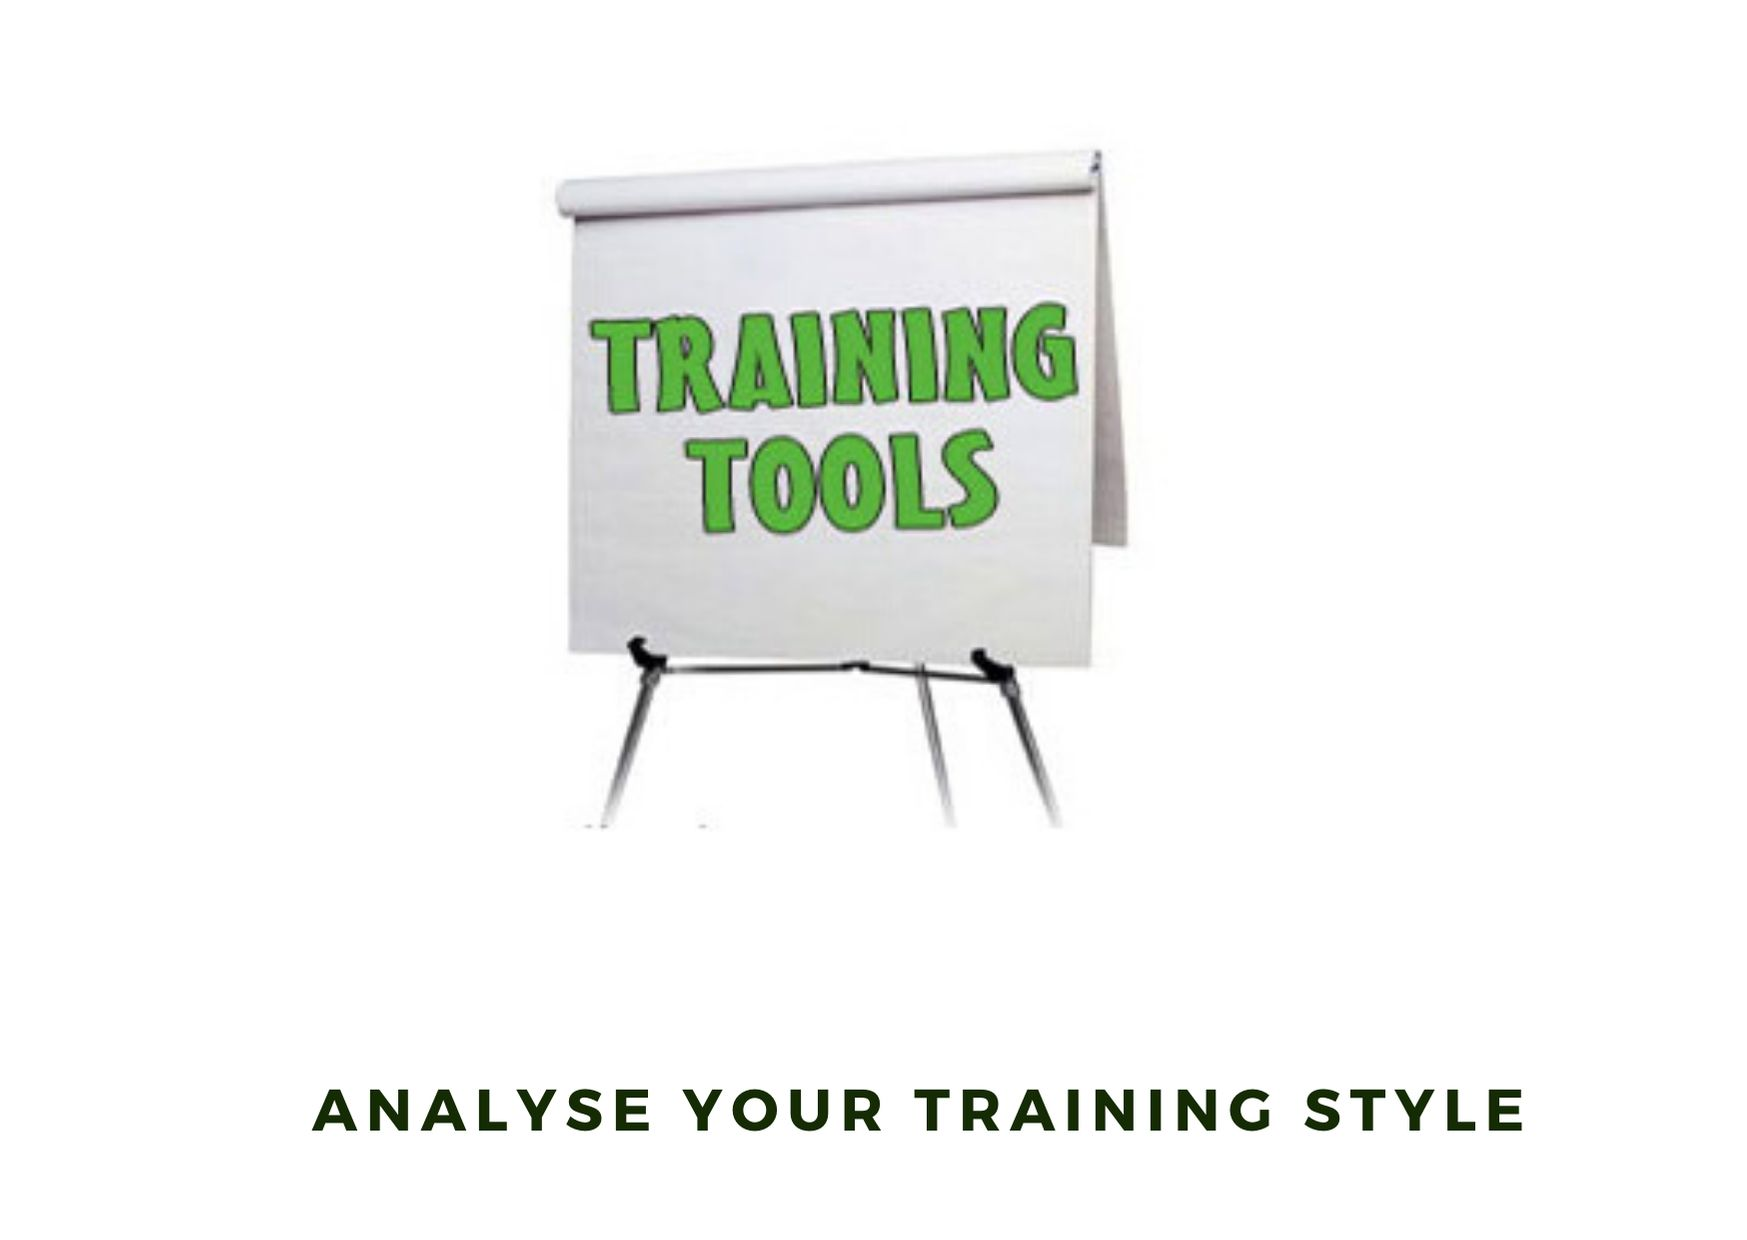 Analyse your training style